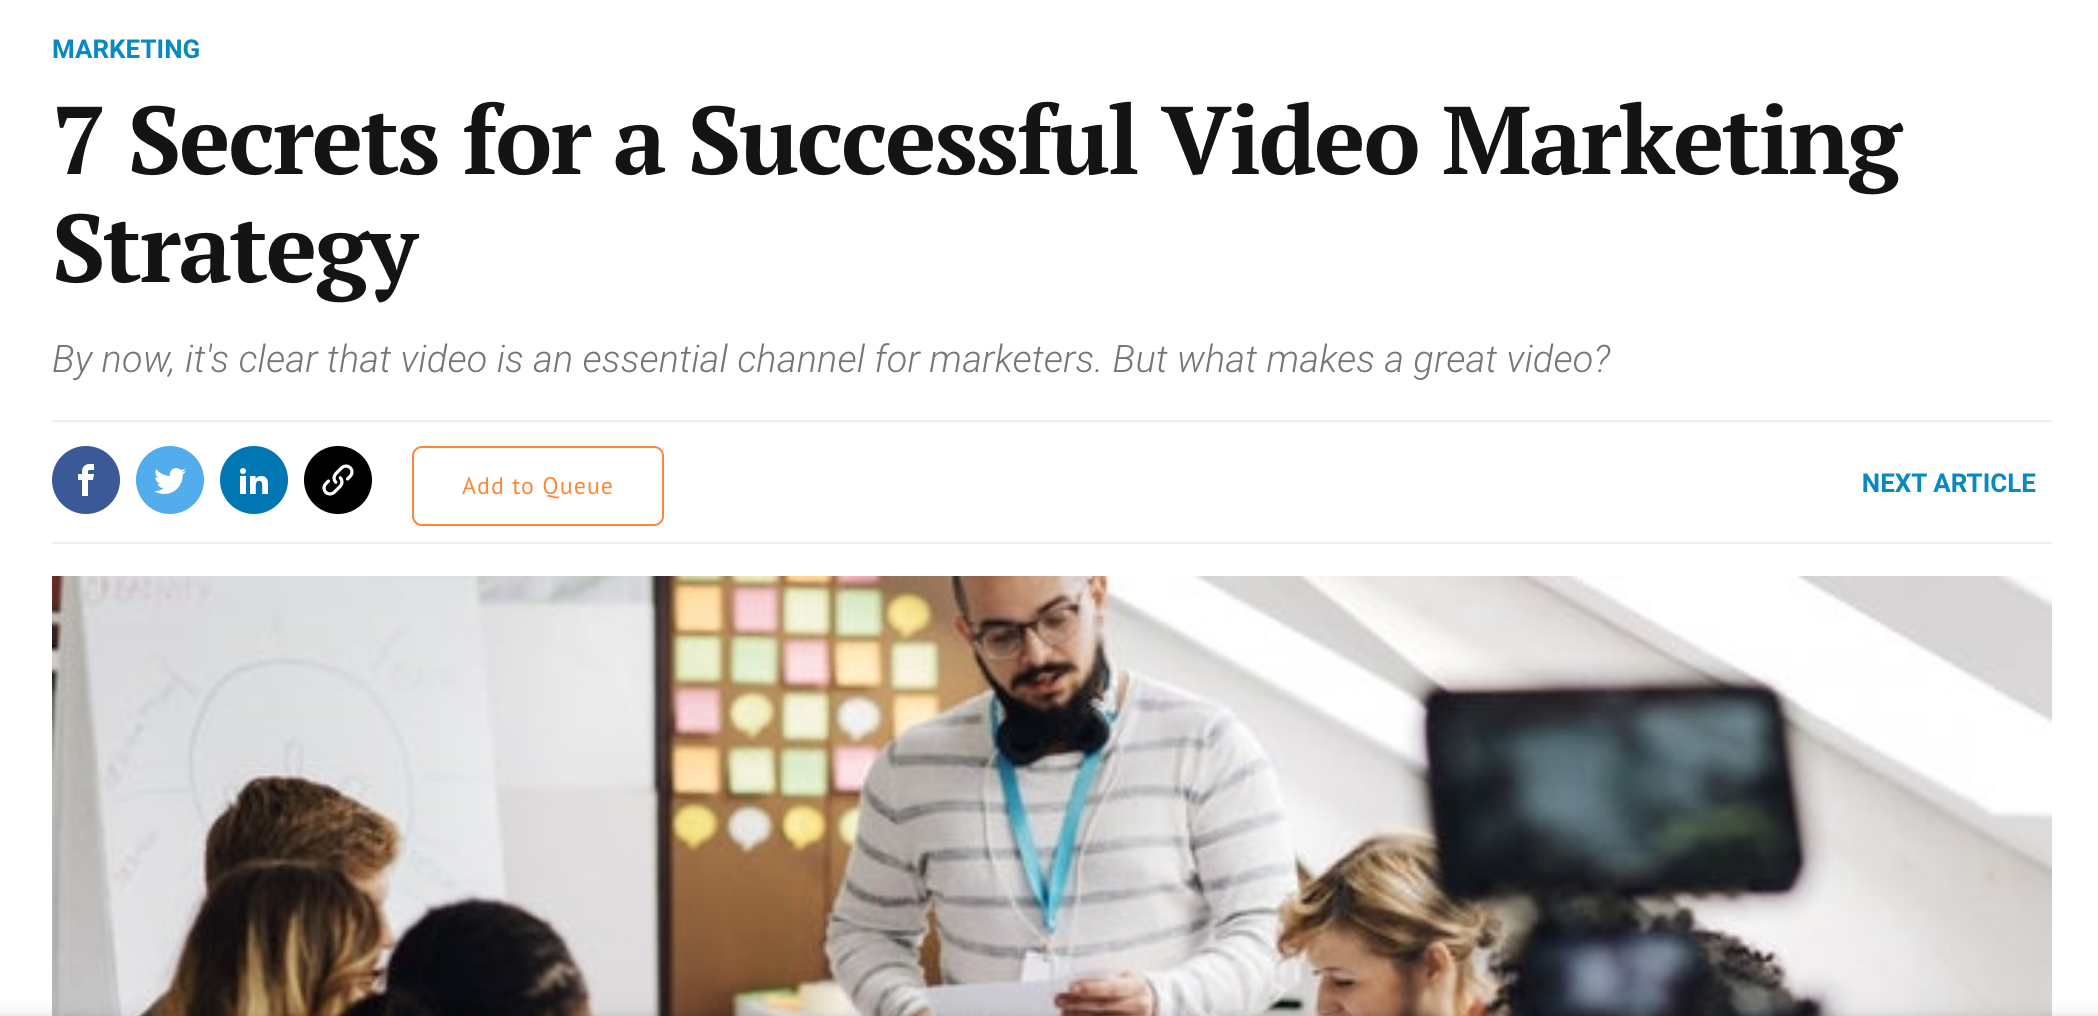 Article about video marketing strategy